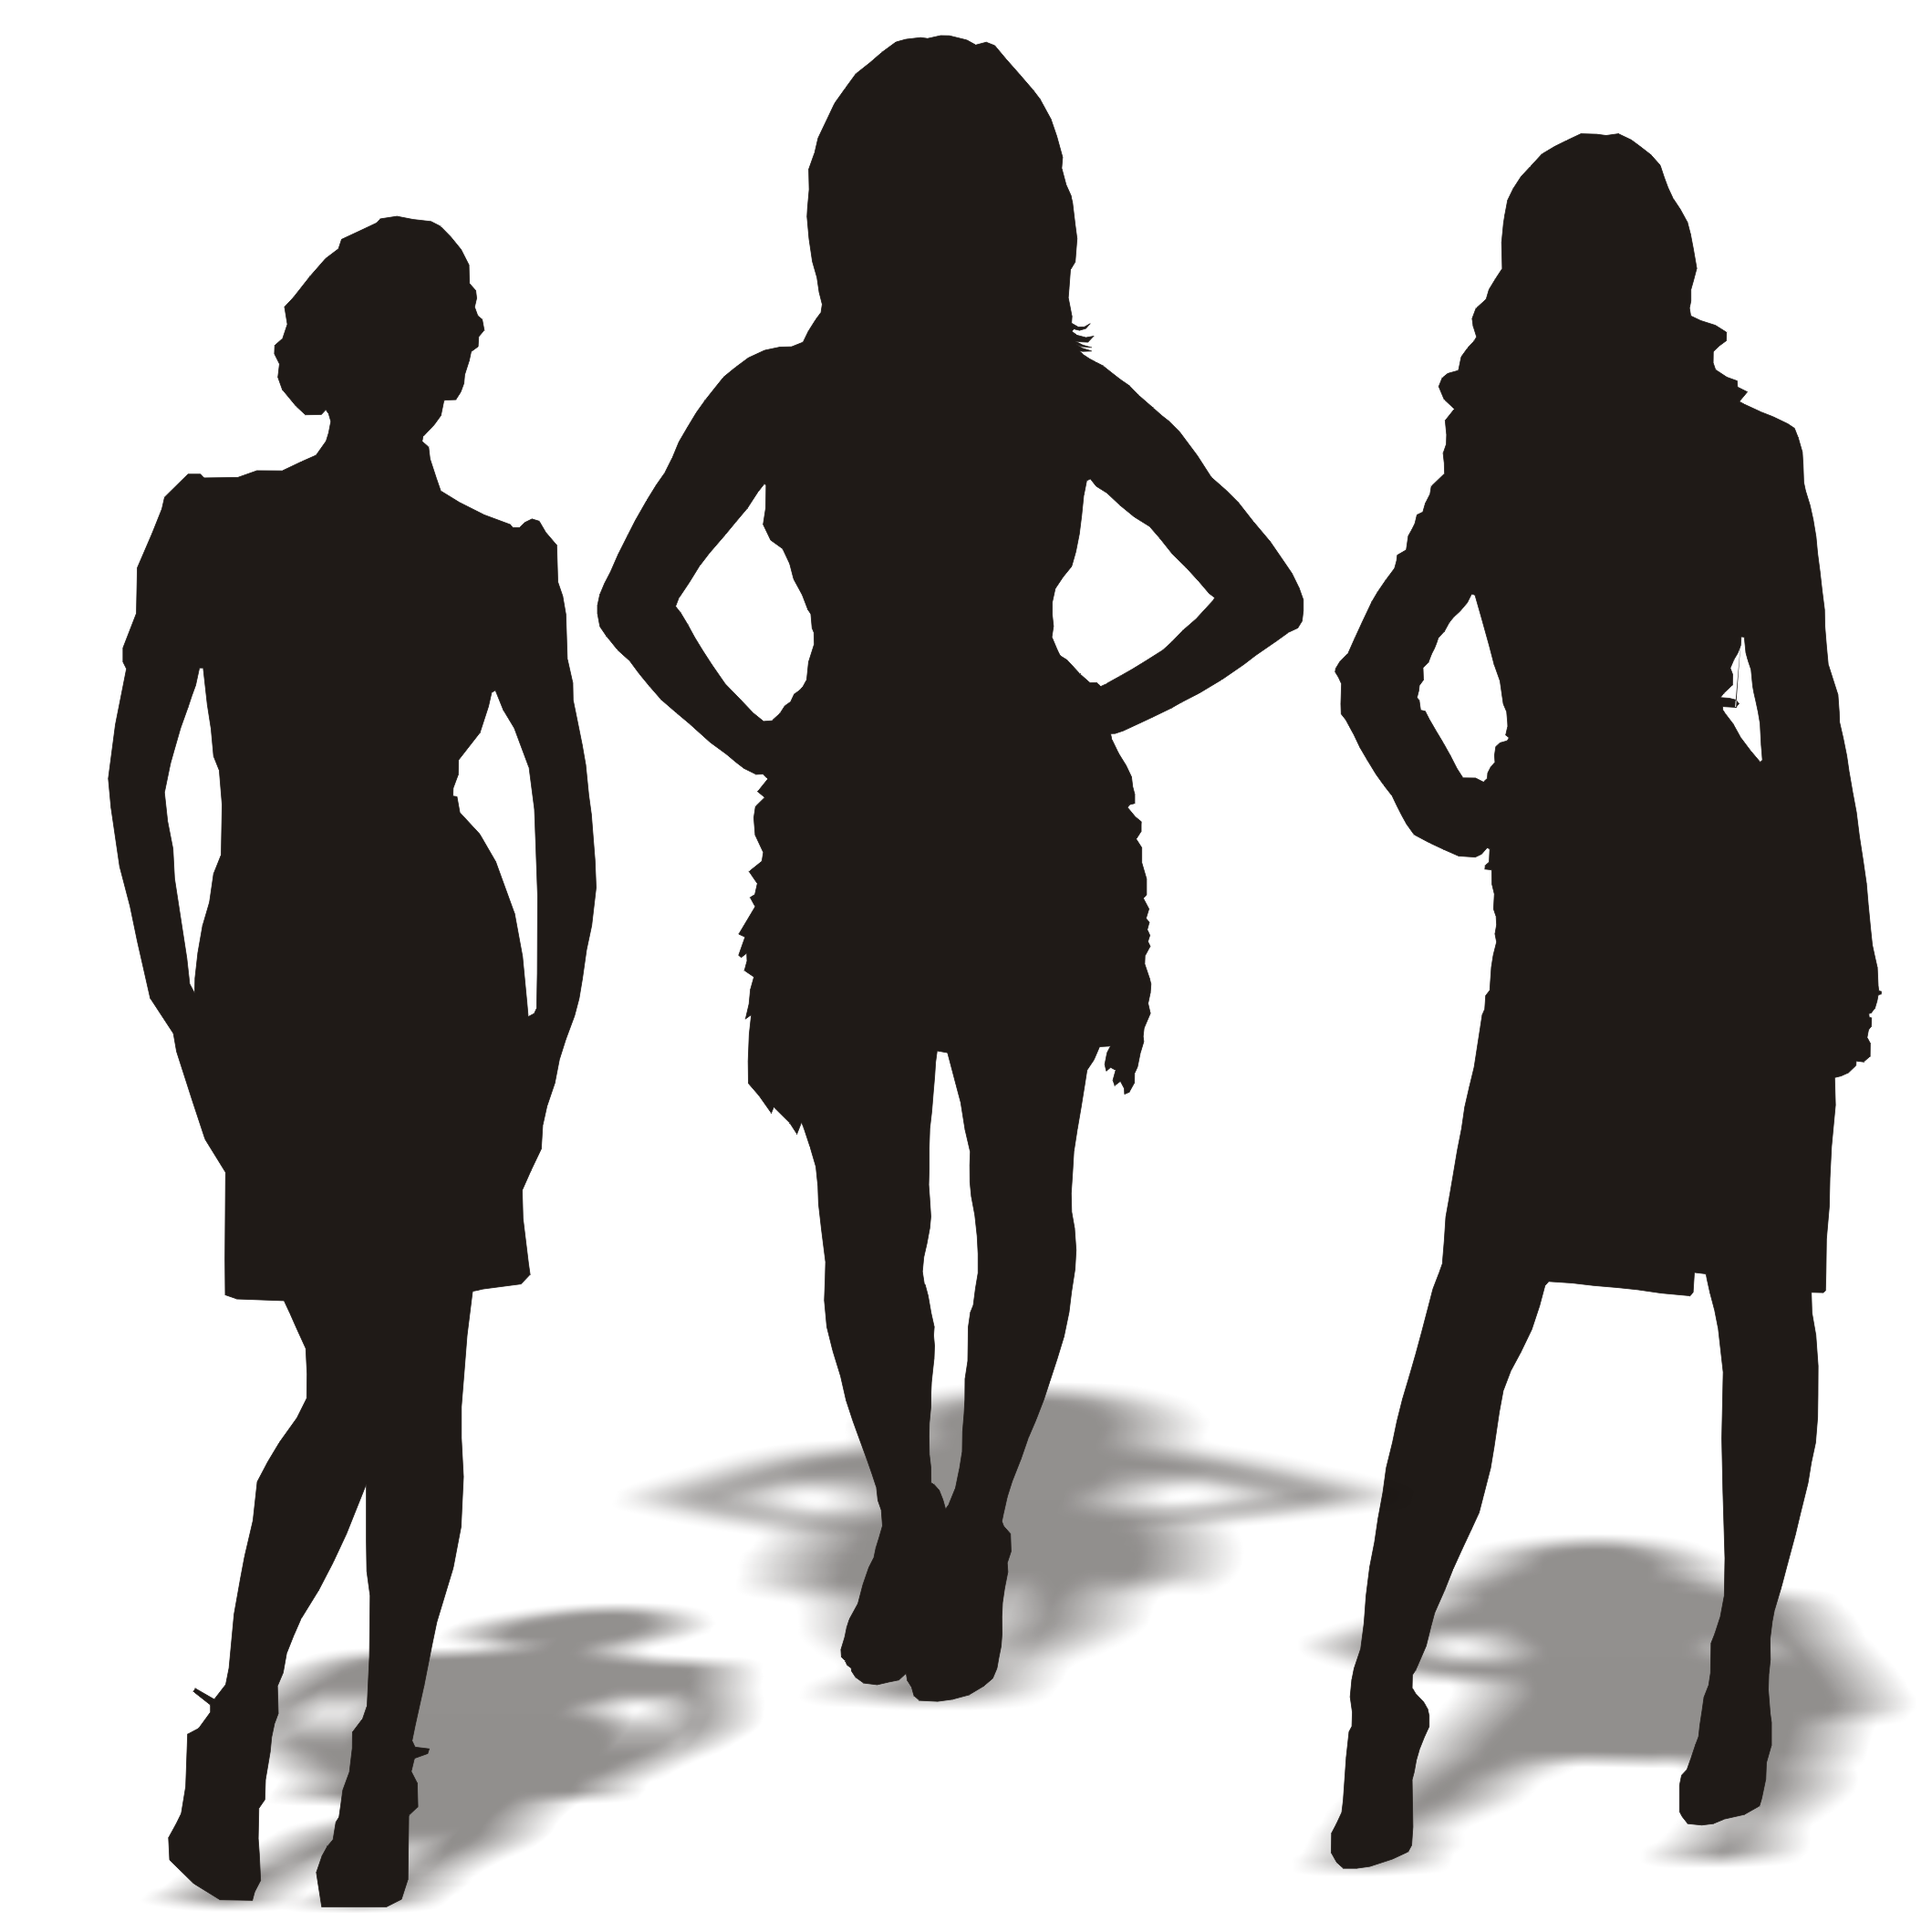 10 Businesswoman Silhouette Vector Free Images